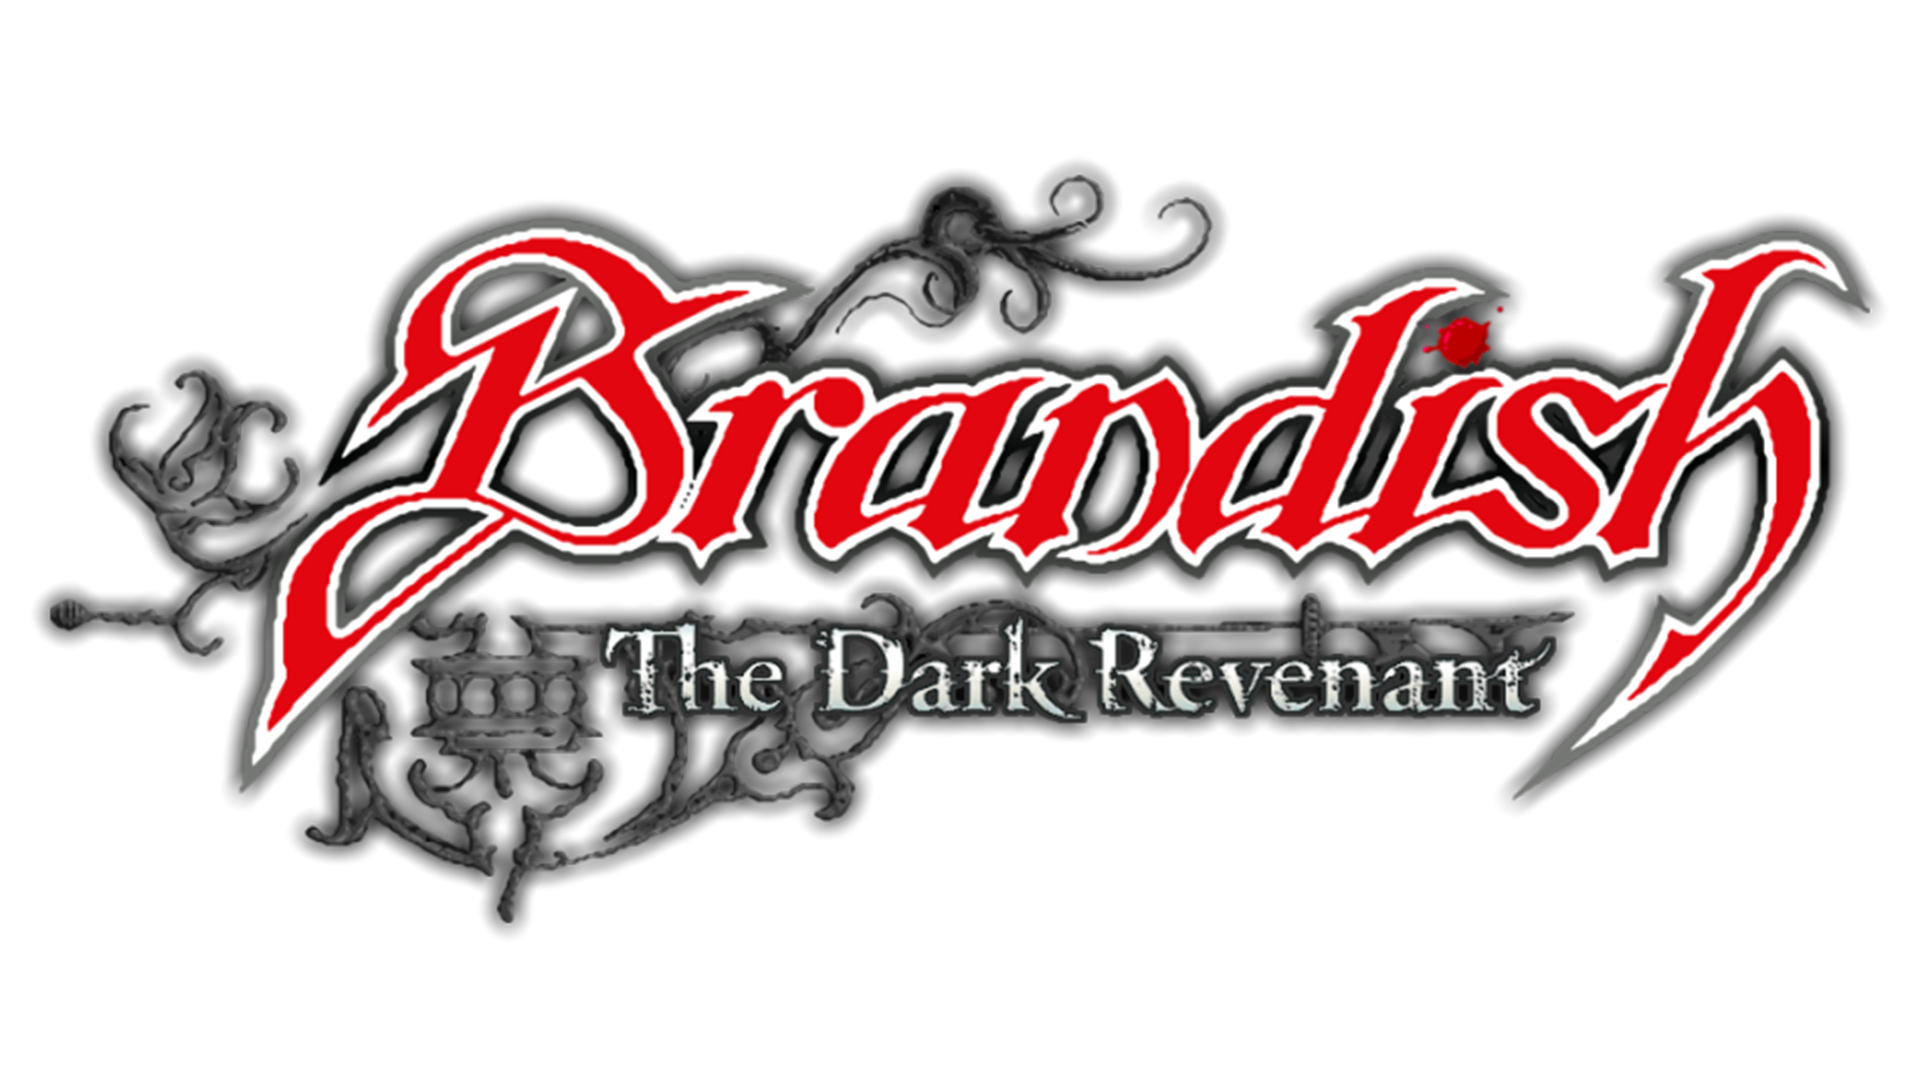 Brandish: The Dark Revenant Logo